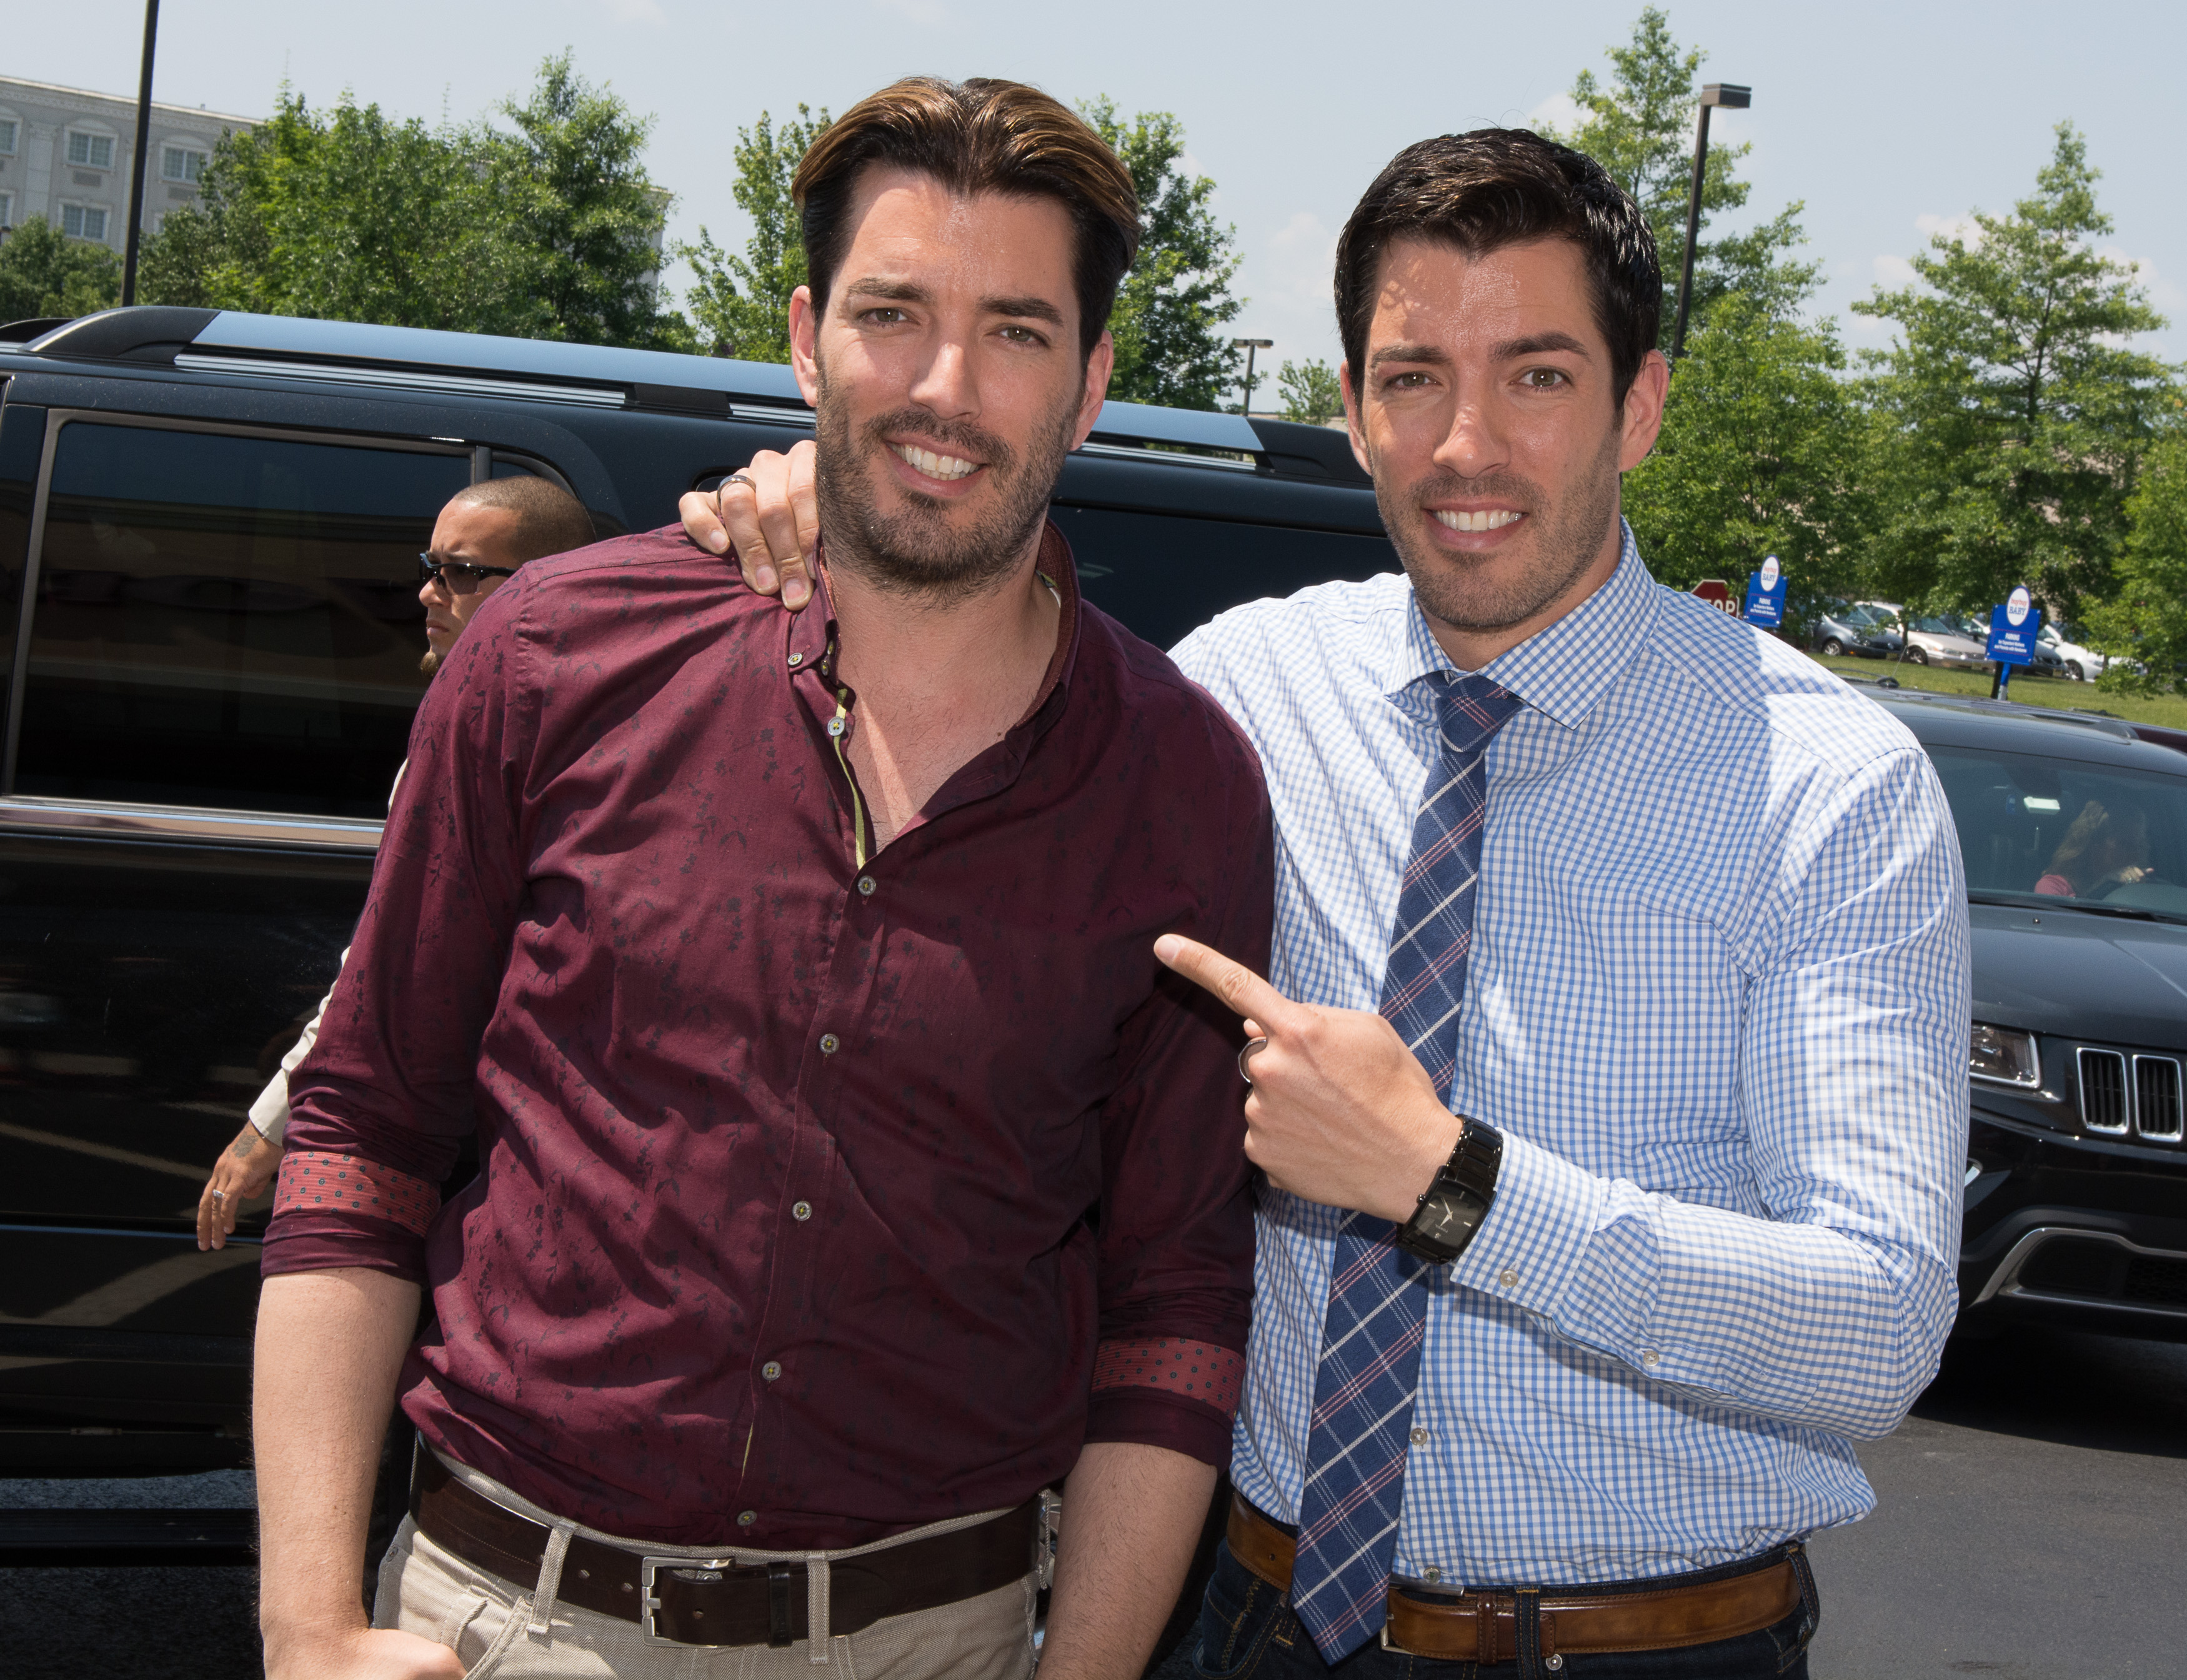 Comedy and construction: The Property Brothers on home renovation tips, dating and more